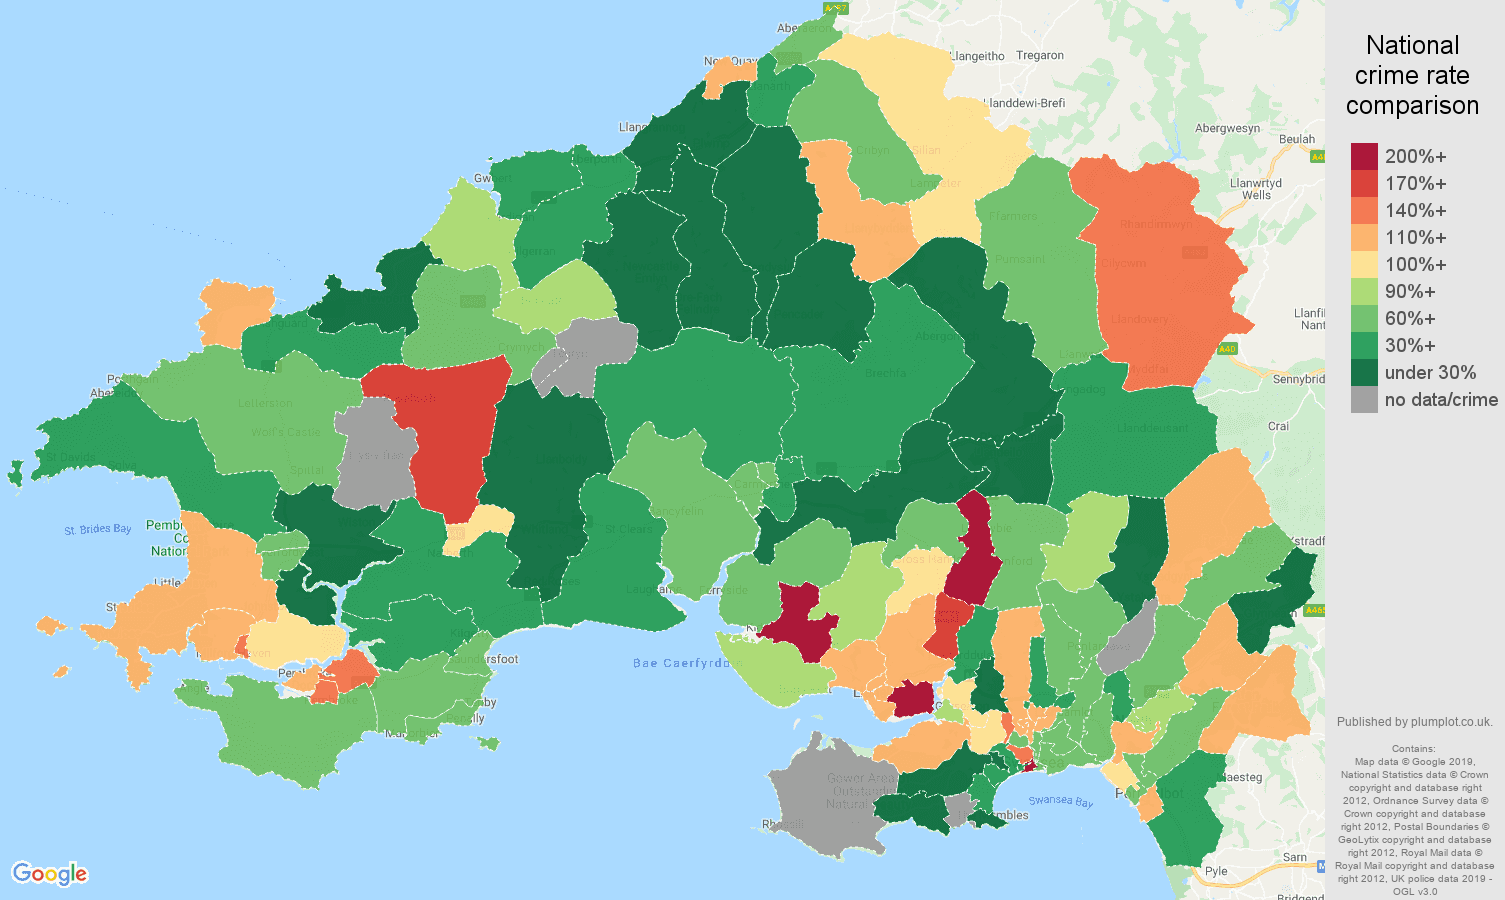 Swansea other crime rate comparison map